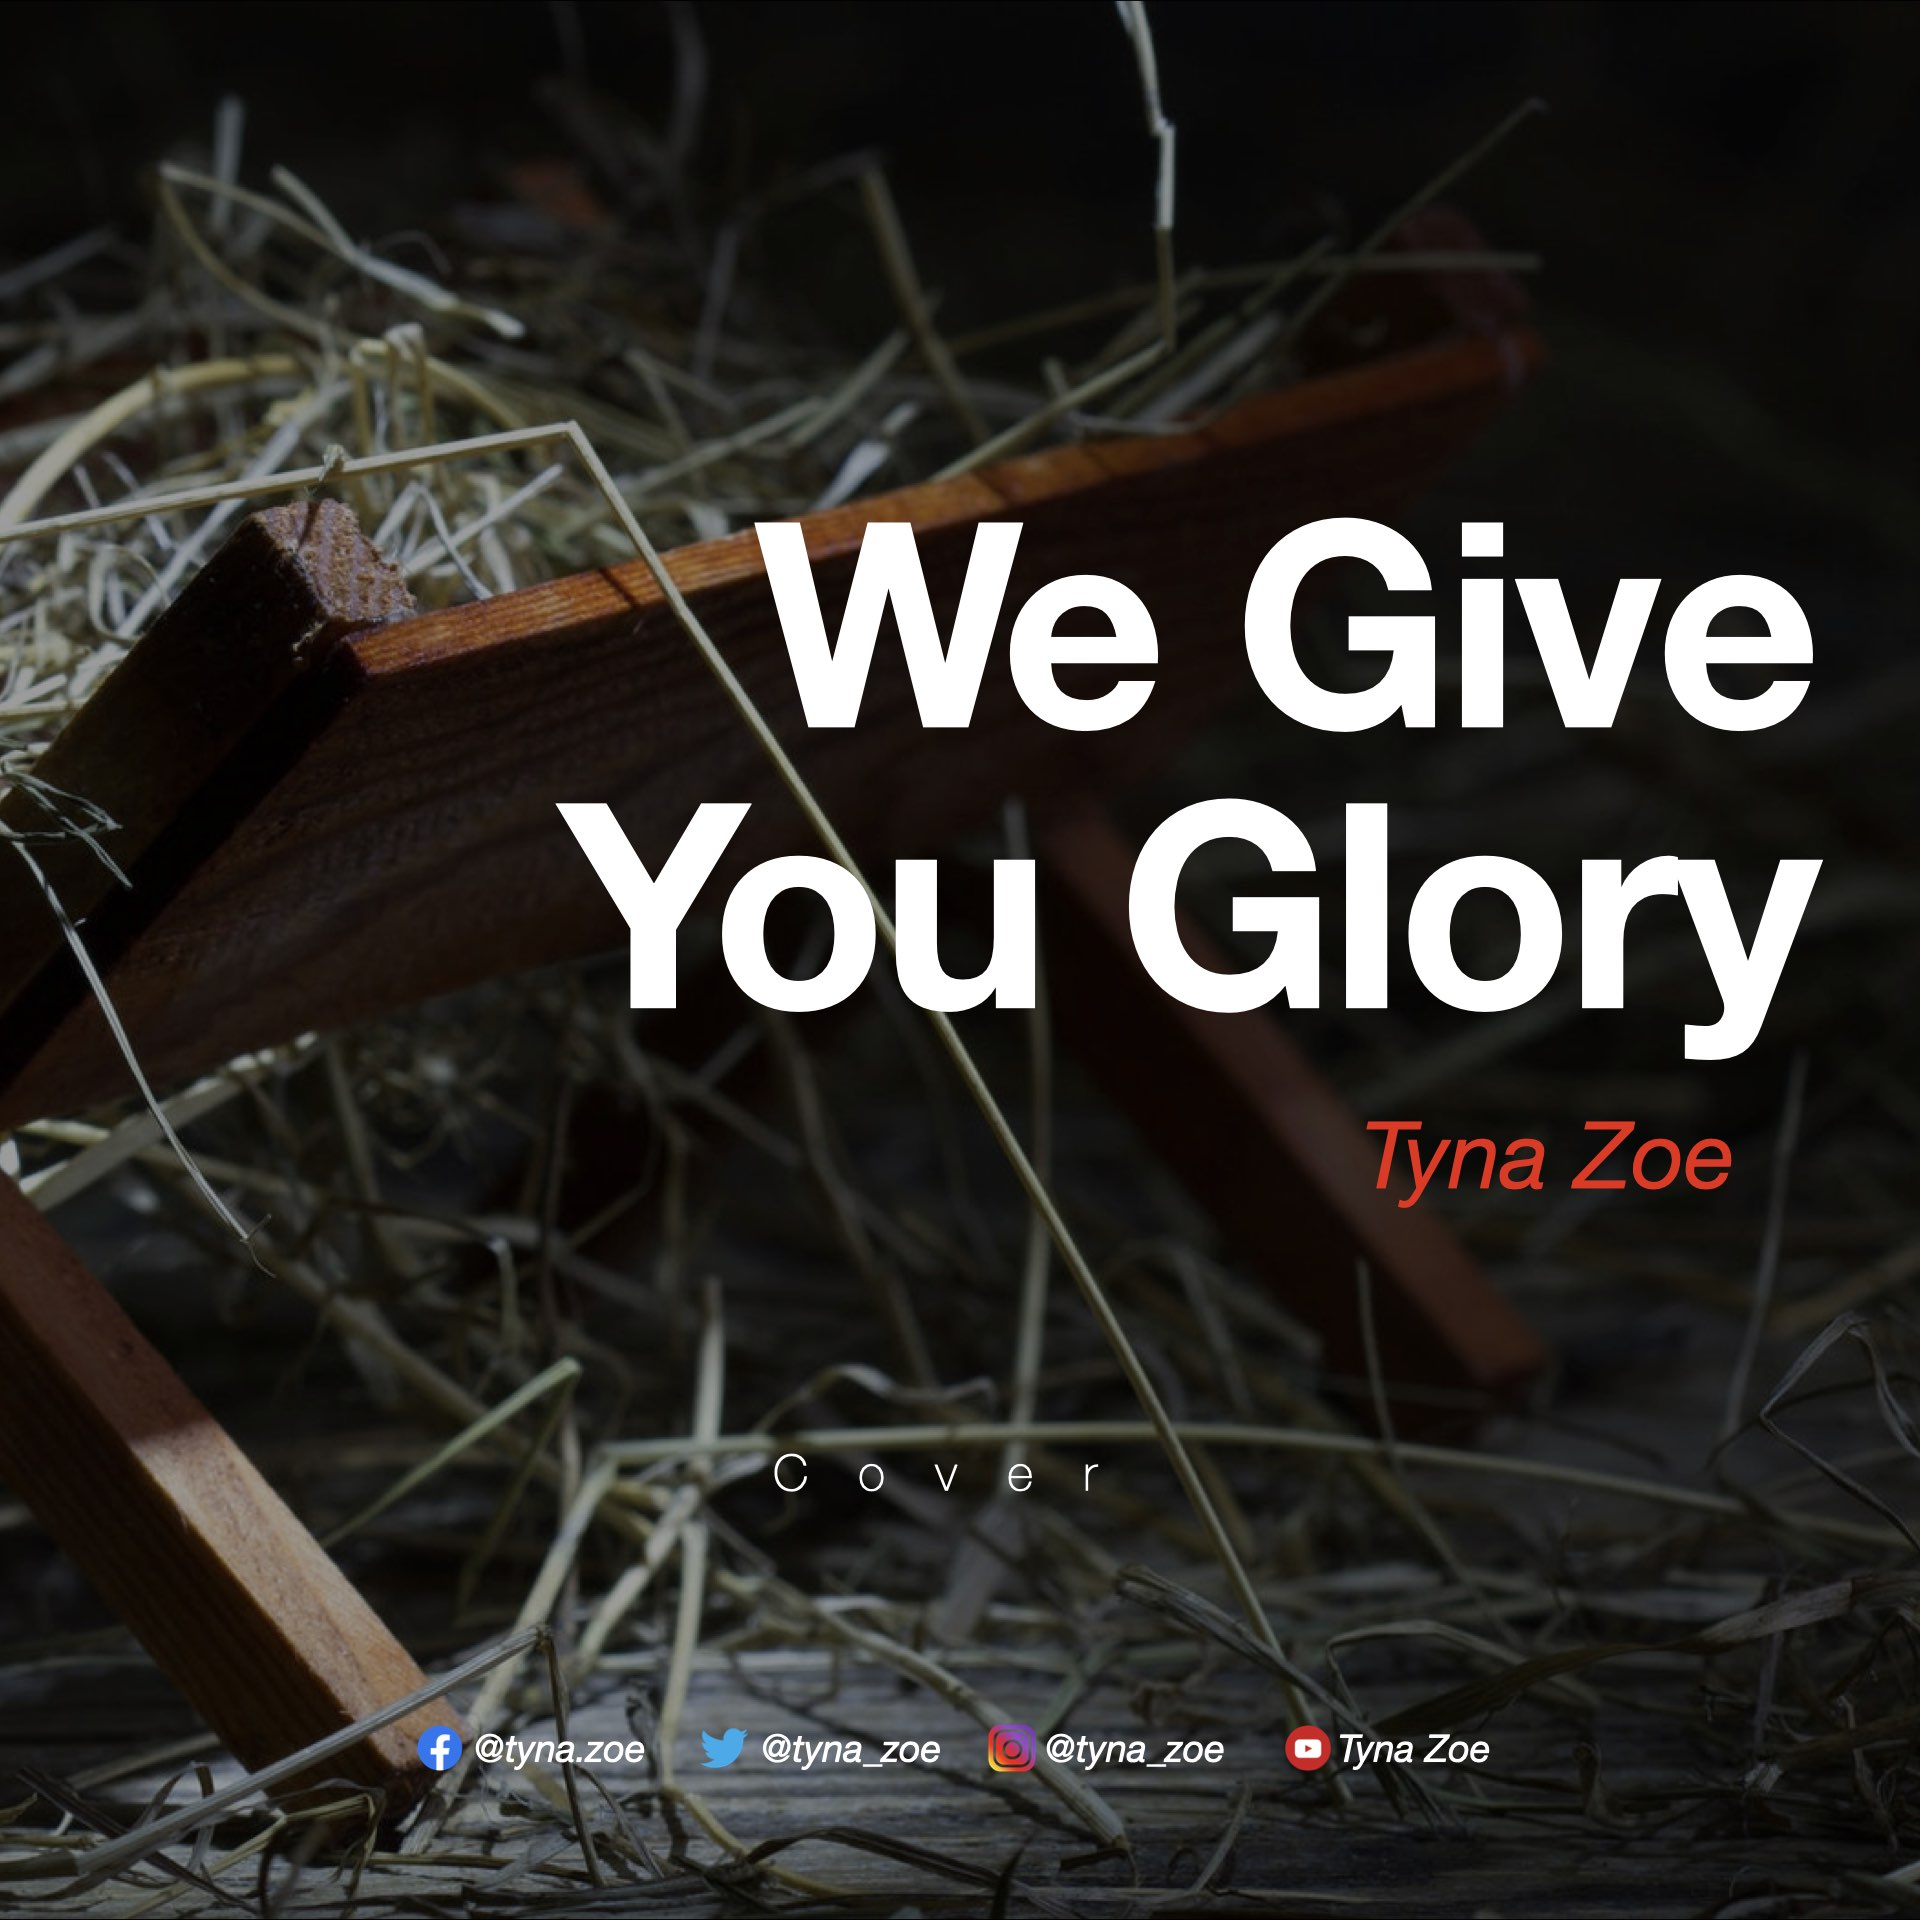 We Give You Glory by Tyna Zoe